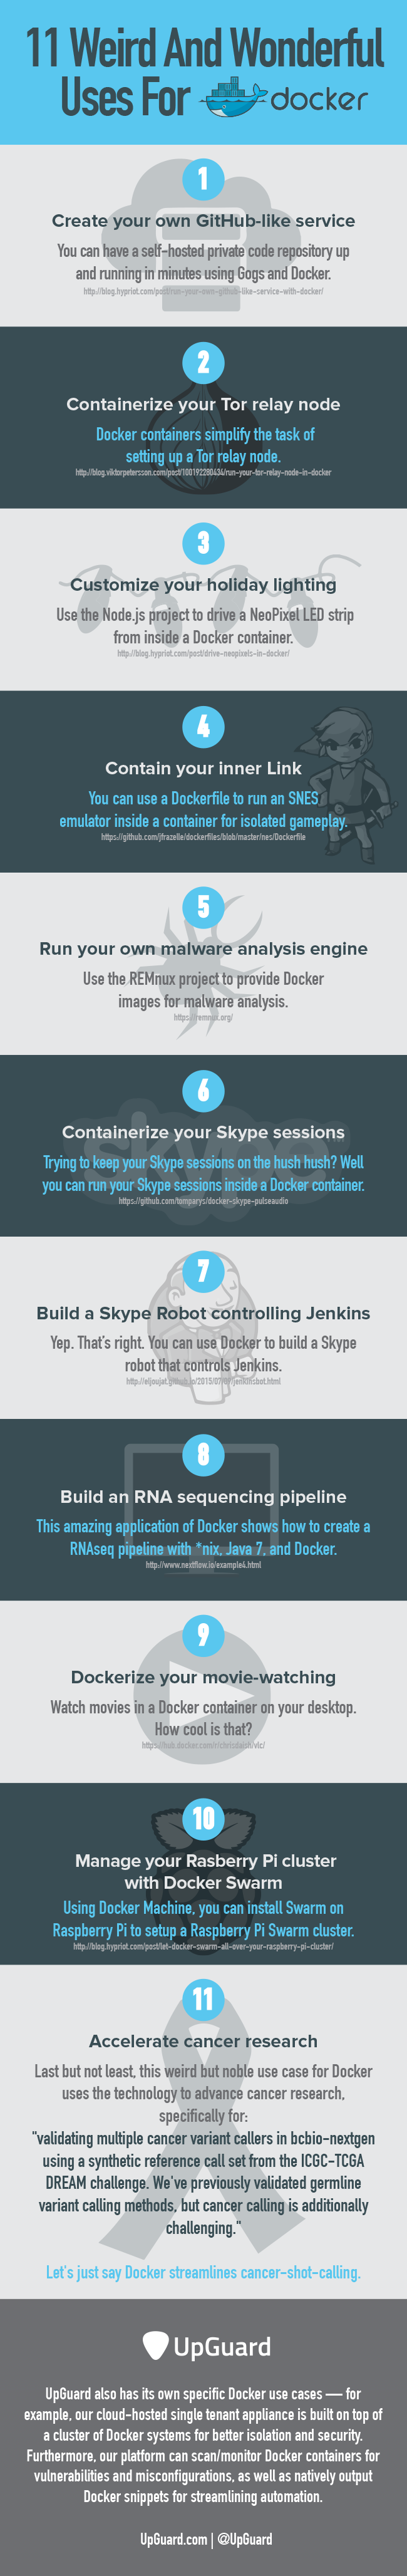 11 Weird and Wonderful Uses for Docker Infographic